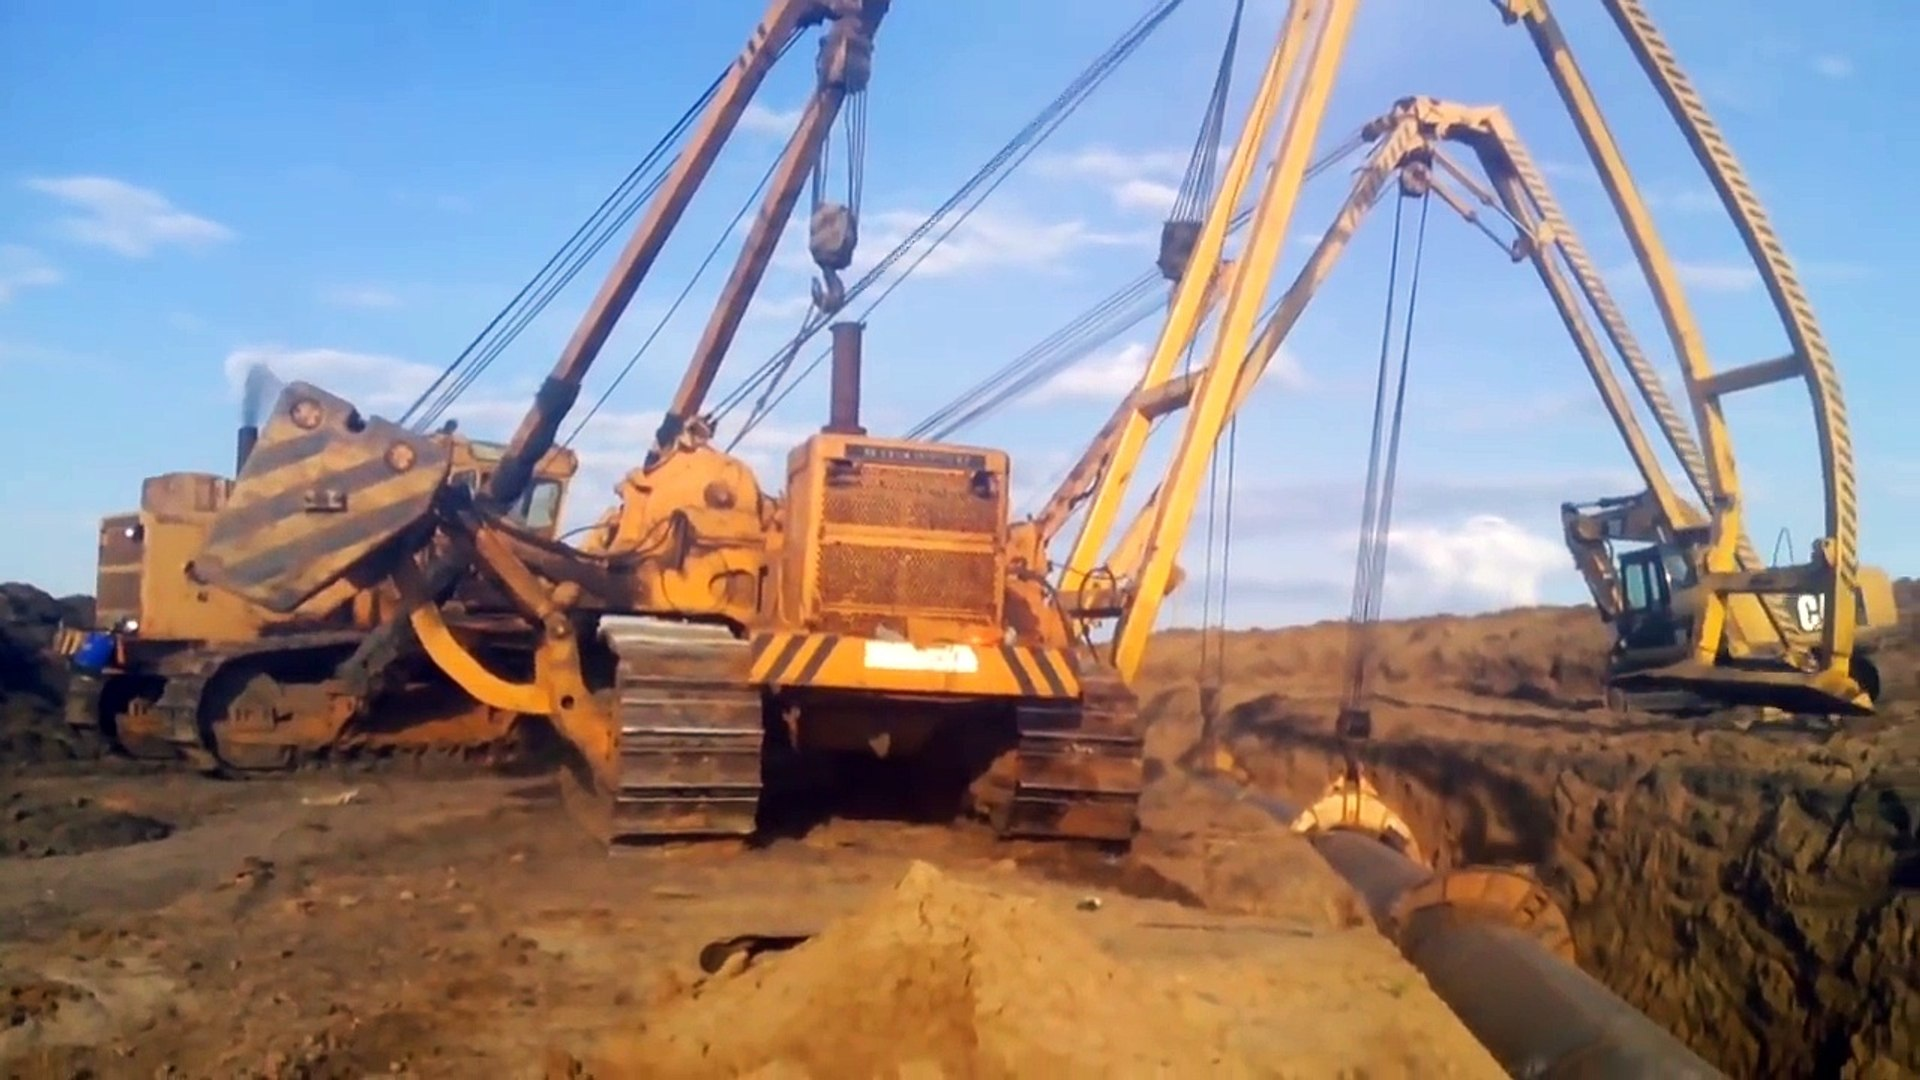 7 Heavy Equipment Operator Safety Tips